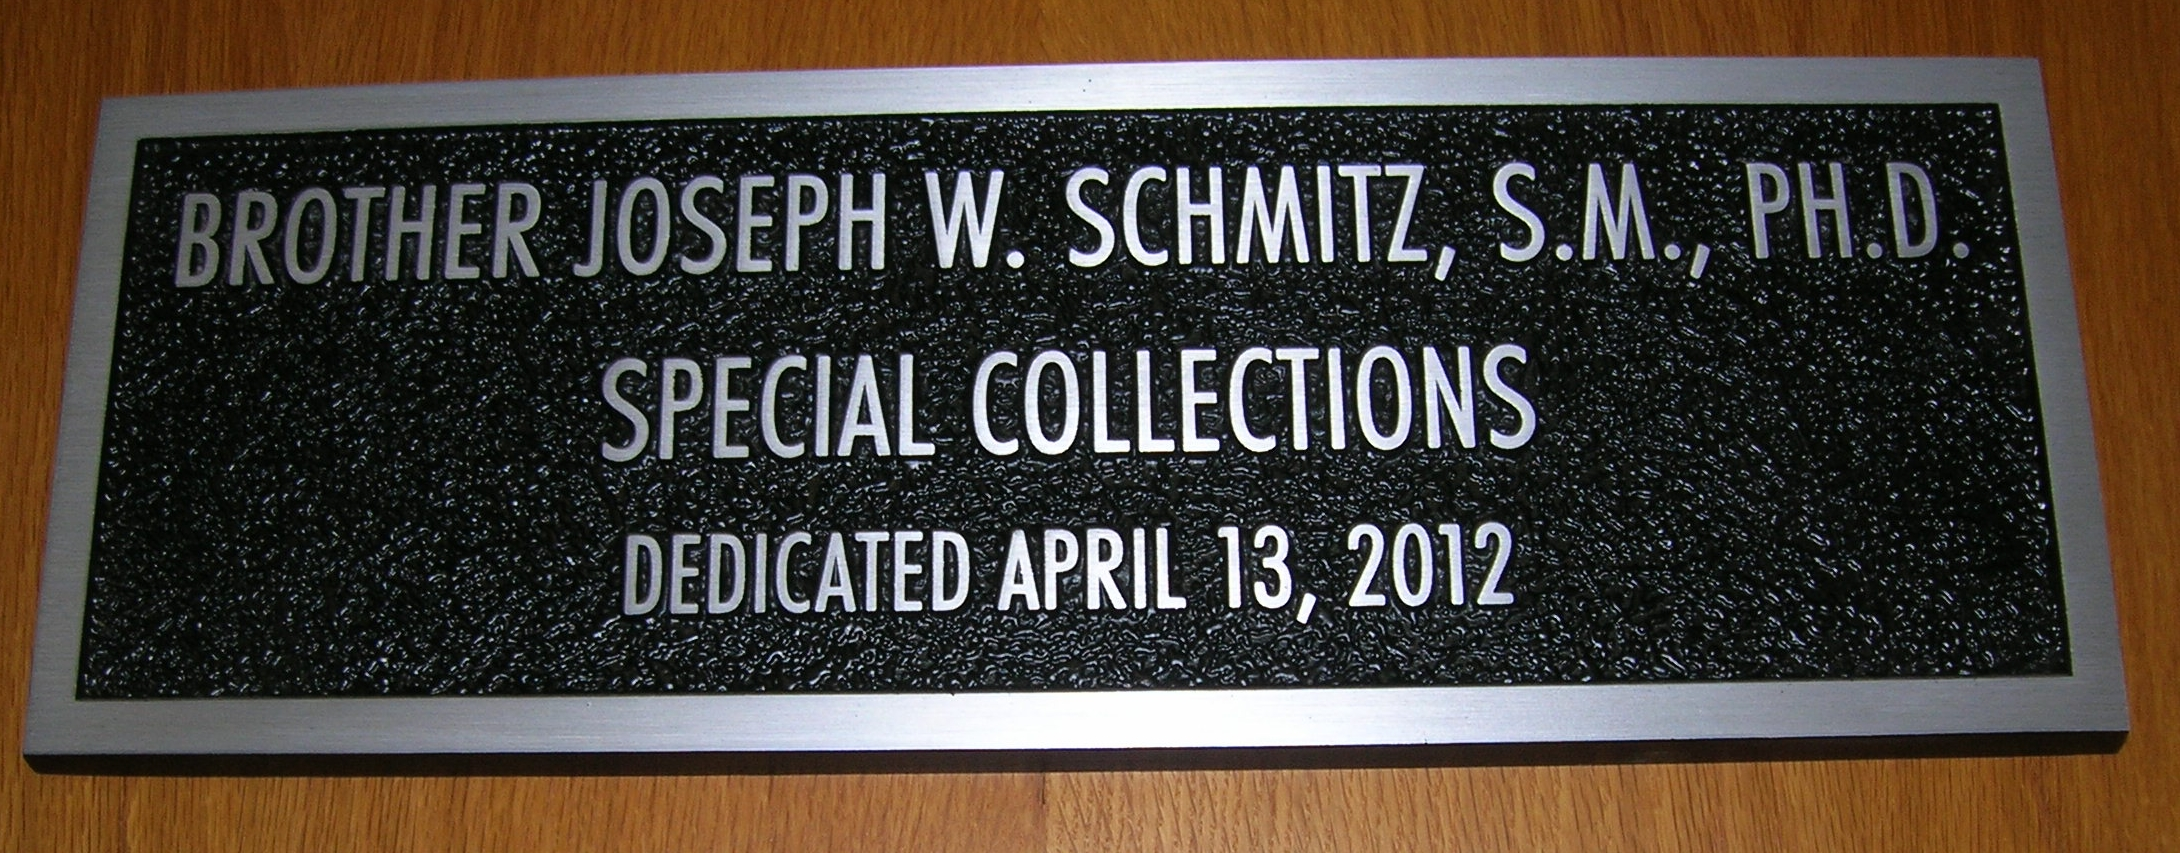 Special Collections sign